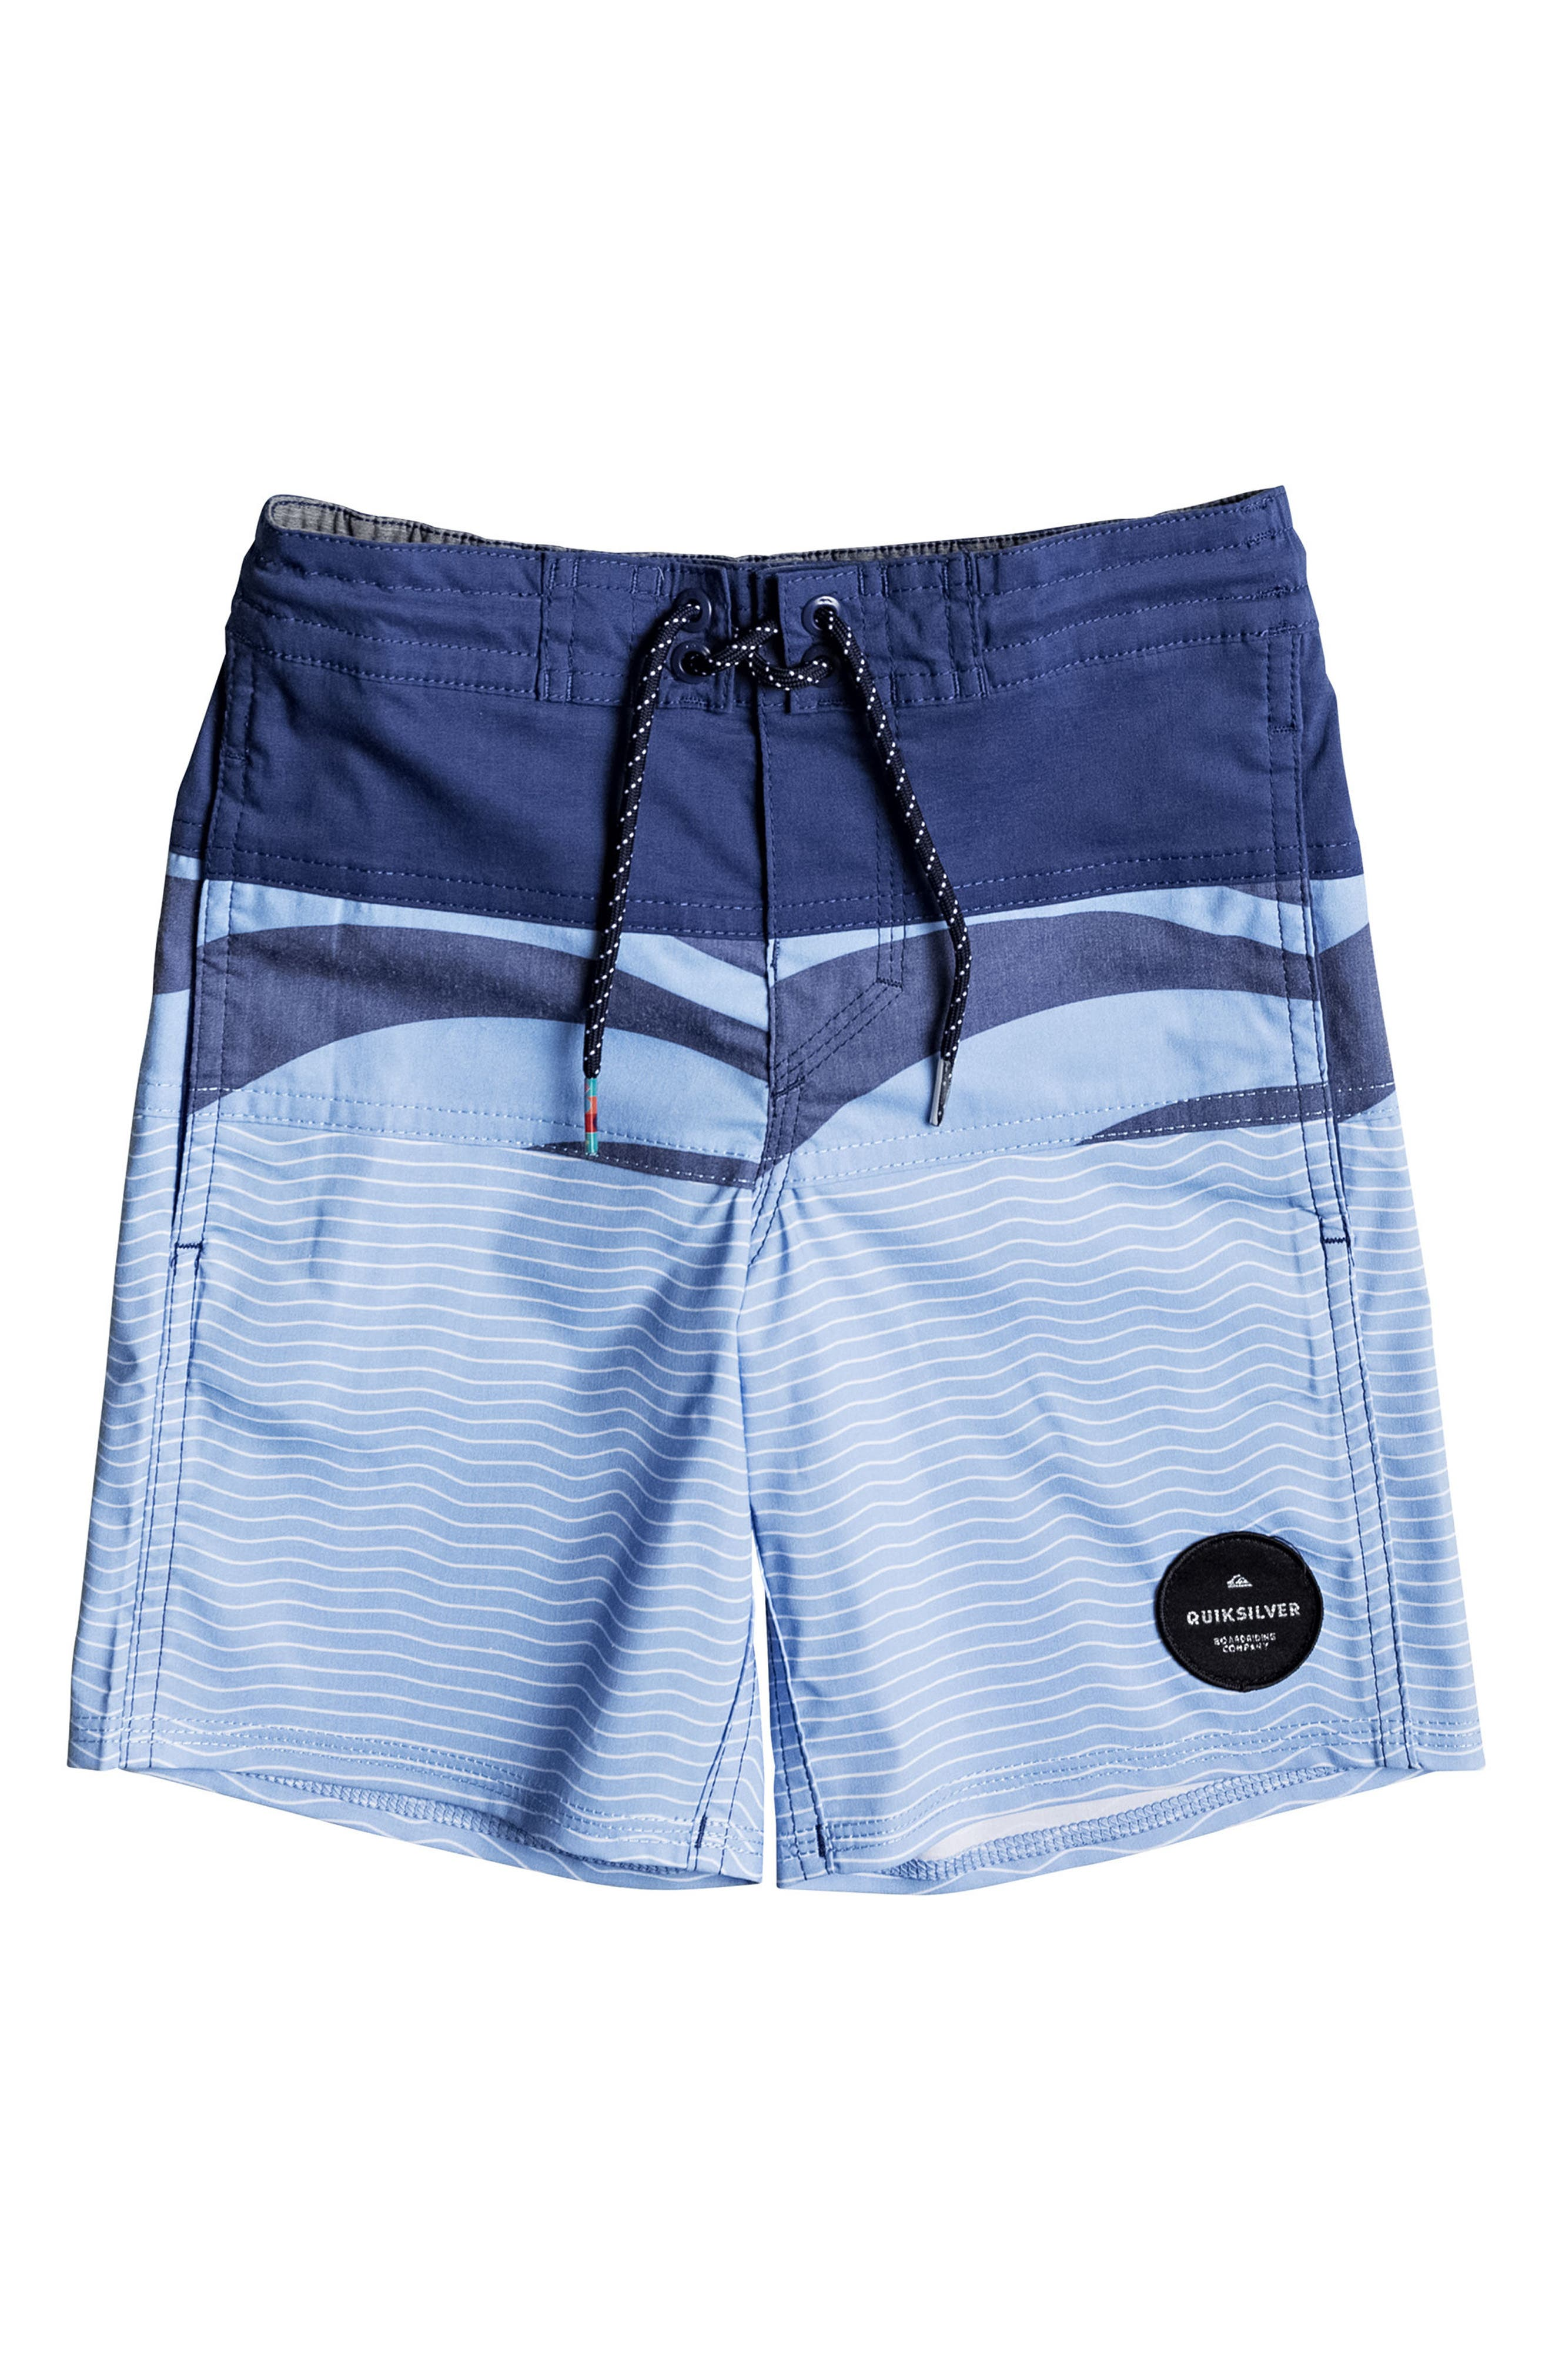 Alternate Image 1 Selected - Quiksilver Heatwave Blocked Board Shorts (Toddler Boys & Little Boys)